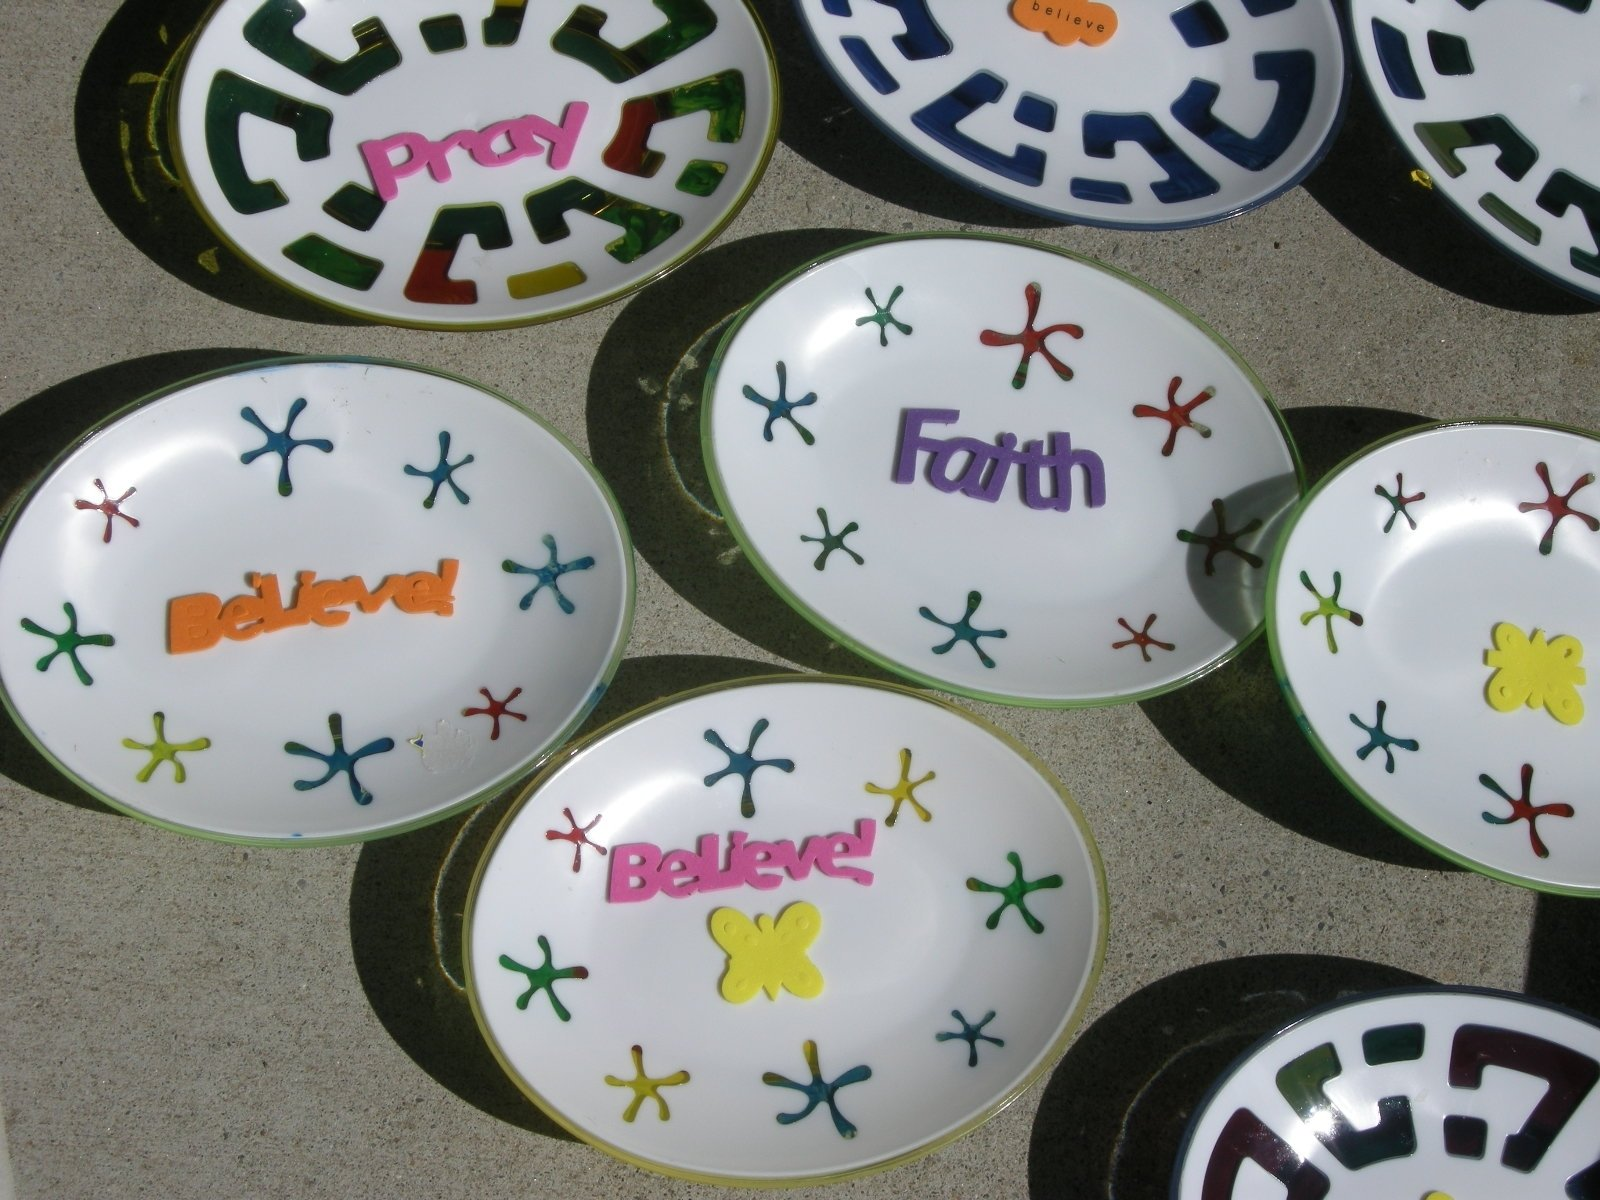 10 Awesome Vacation Bible School Crafts Ideas vacation bible school crafts ideas vacation bible school crafts 2020